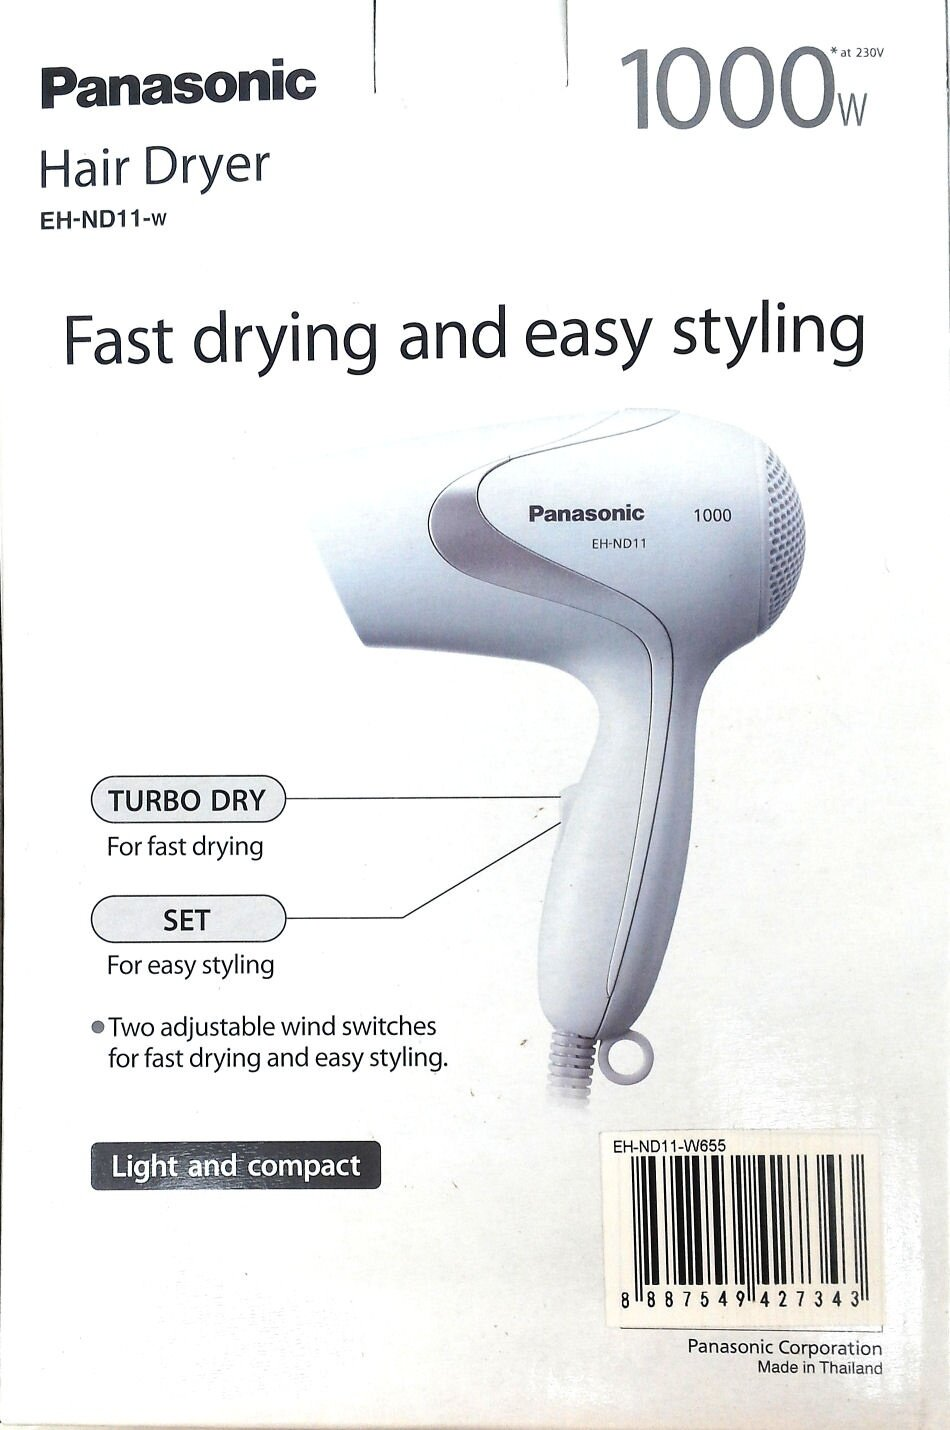 How Hair Dryer Works 220 Volt Electric Wiring Diagram Blow Drying Pg Mall Malaysia Online Shopping Buy Sell Smartphones Tablets